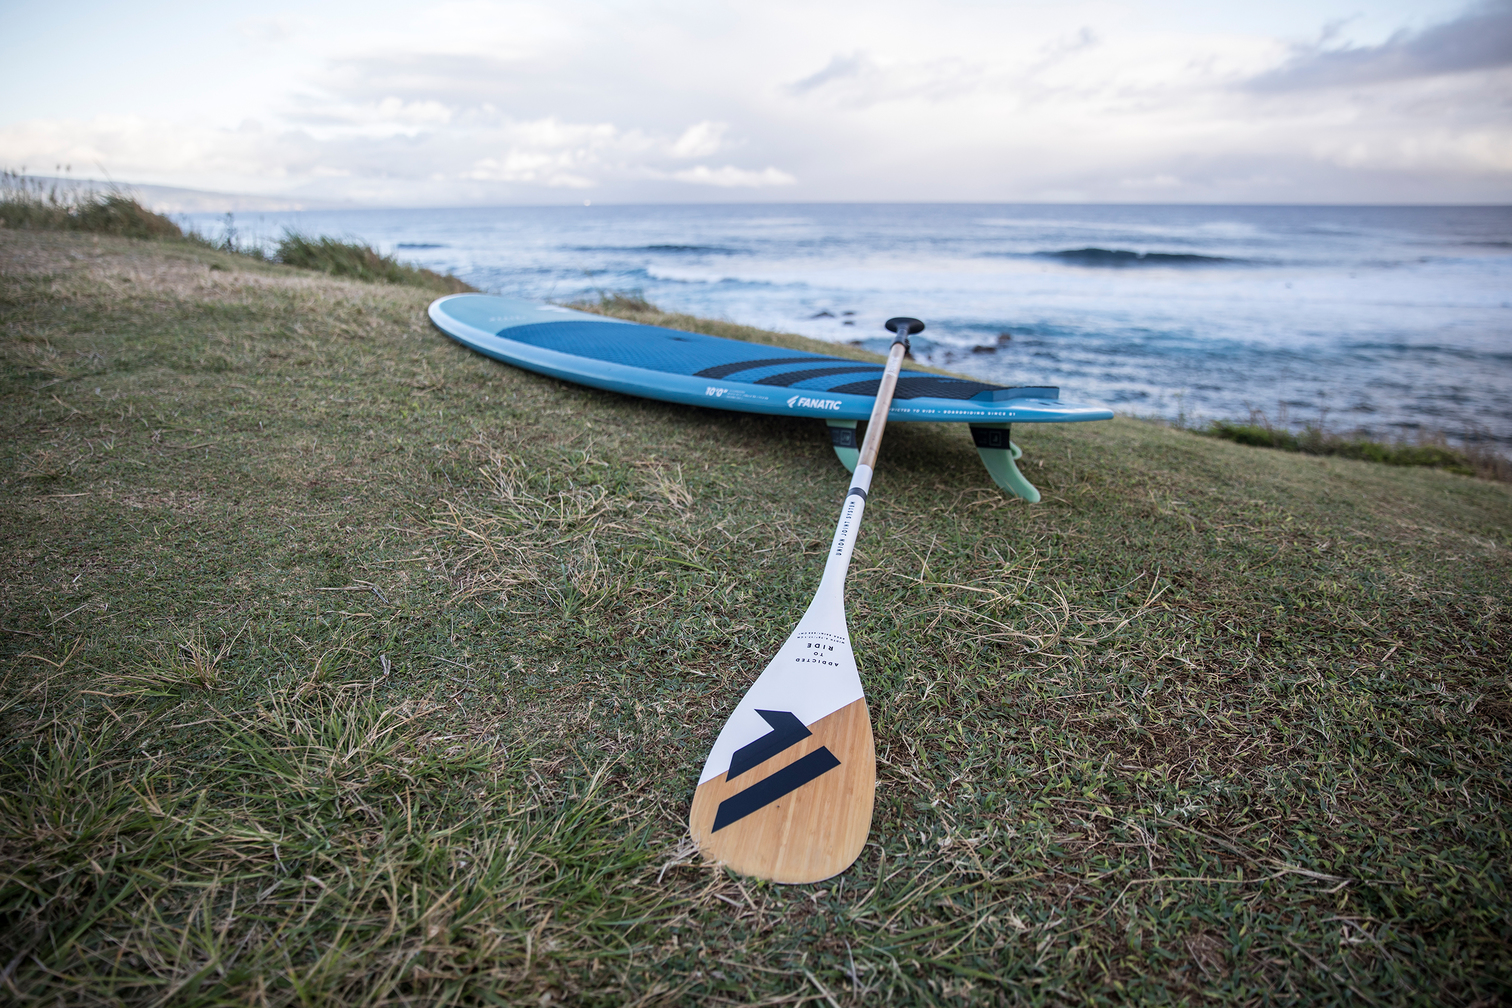 Stylemaster Paddle Product JohnCarter-JC F19 Day5 D4 7062